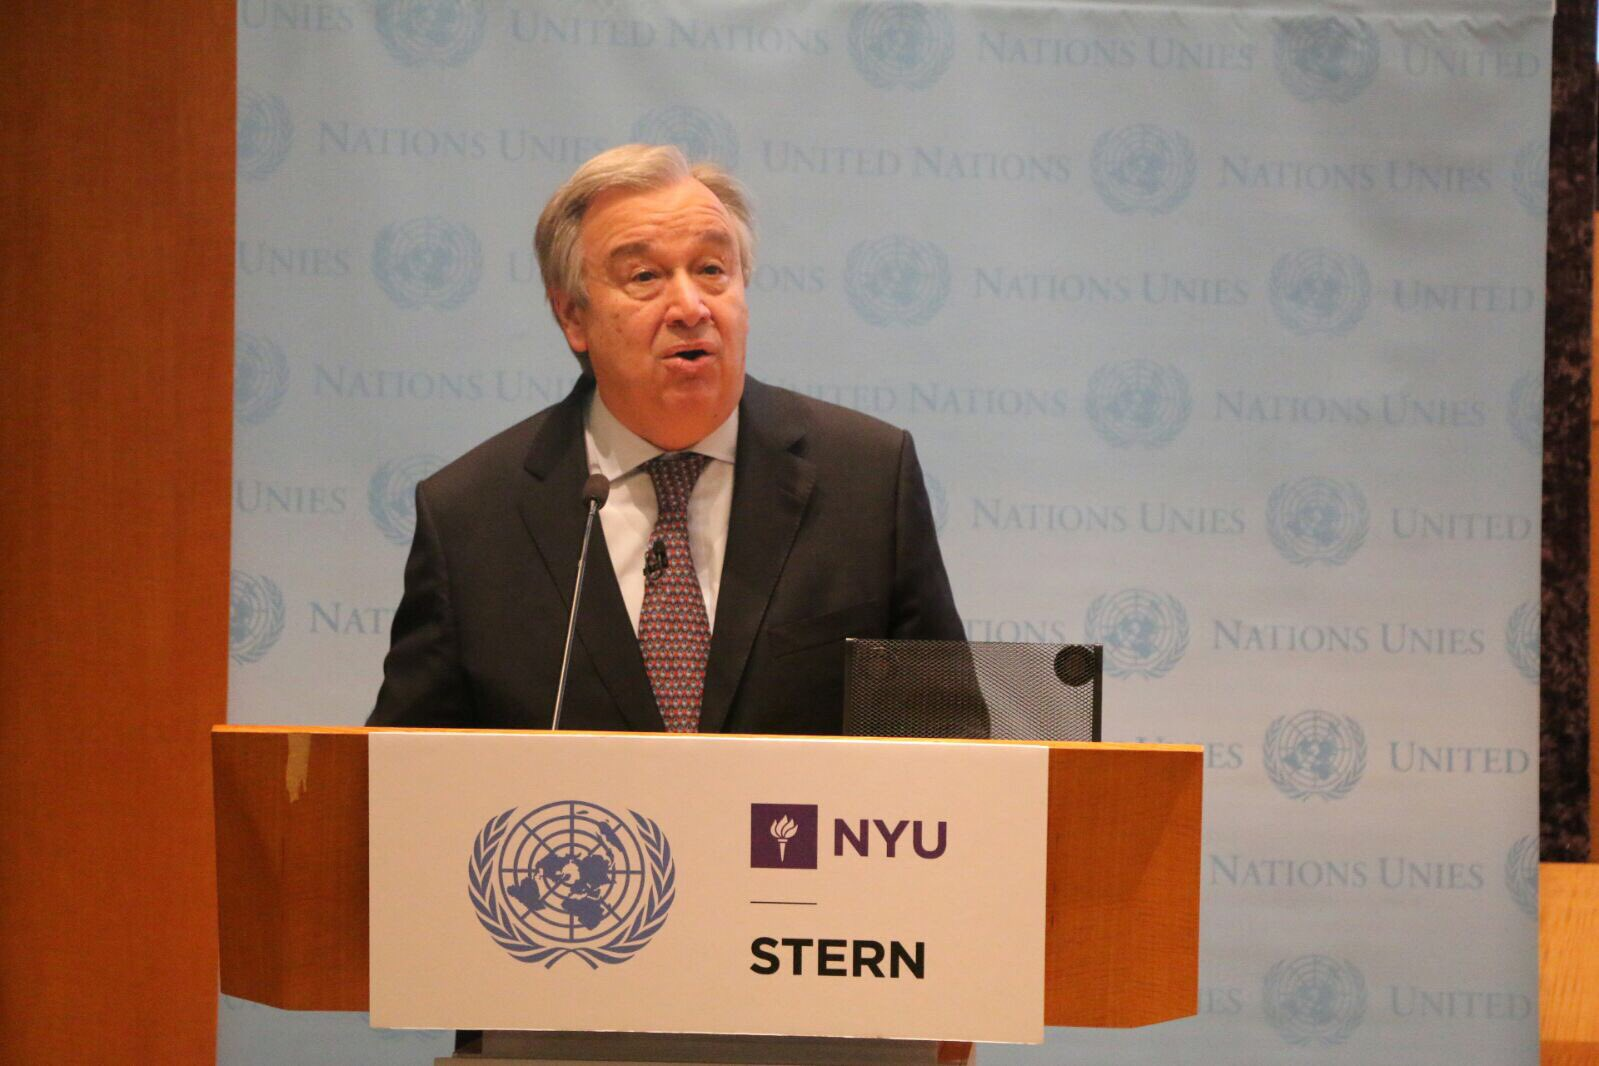 Photo: Secretary-General Antonio Guterres addresses the NYU audience.